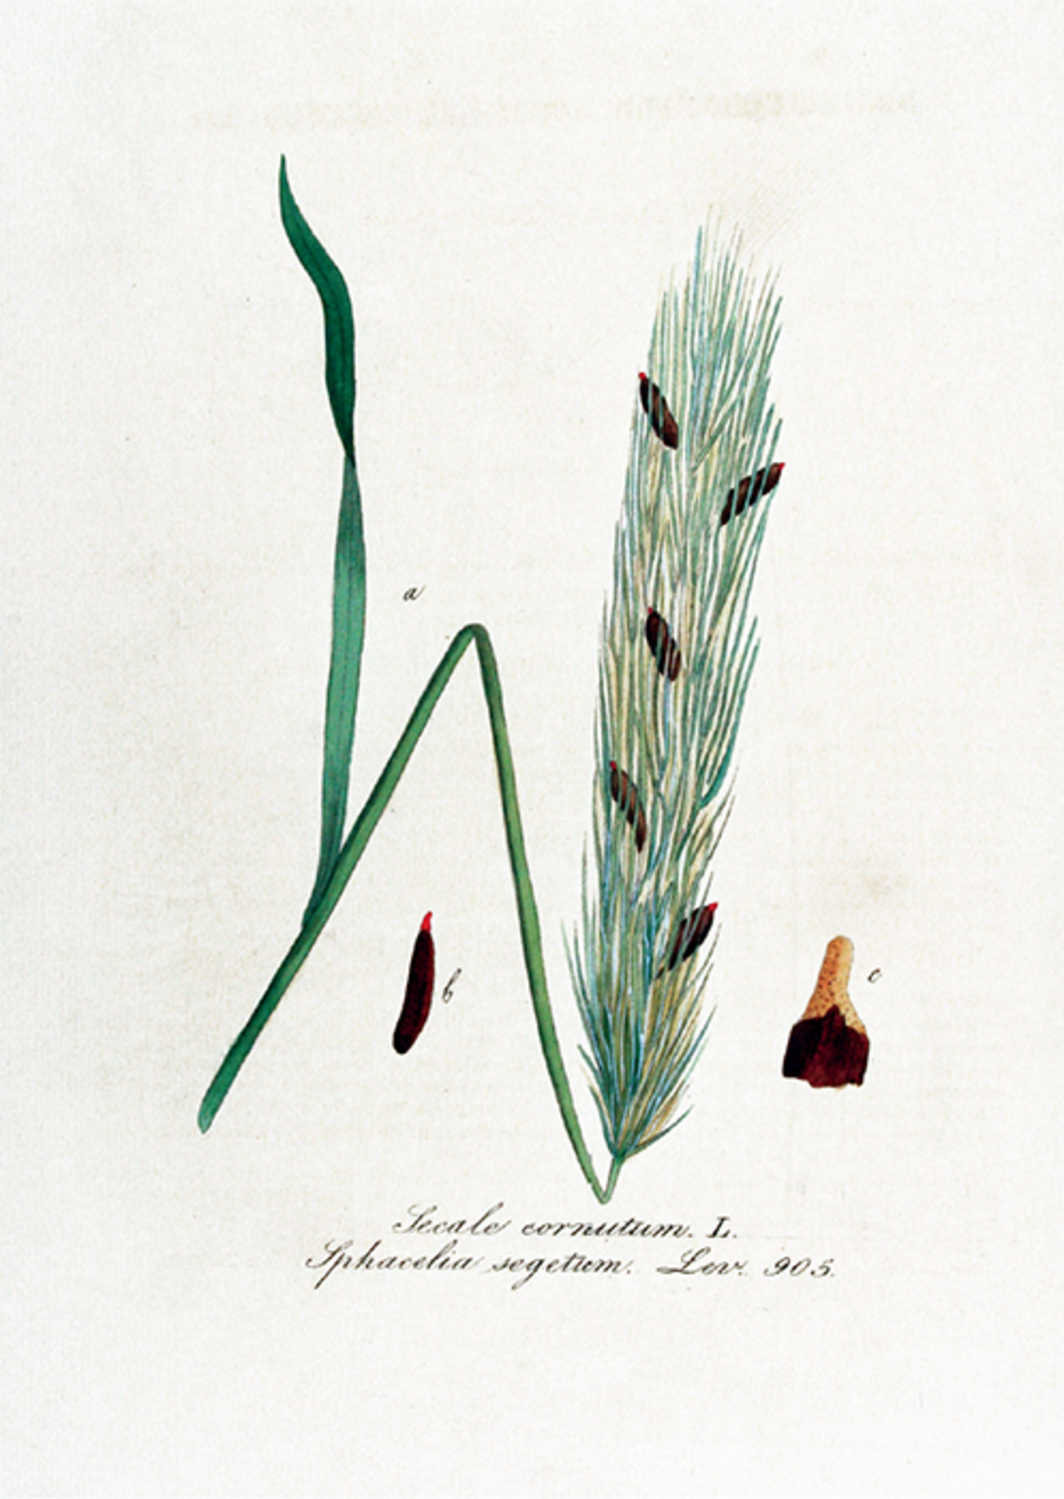 Ergot, as illustrated by Jan Christiaan Sepp in Jan Kops's Flora Batava of Afbeeldingen en Beschrijving van Nederlandsche Gewassen (Pictures and Description of Dutch Crops), 1865.